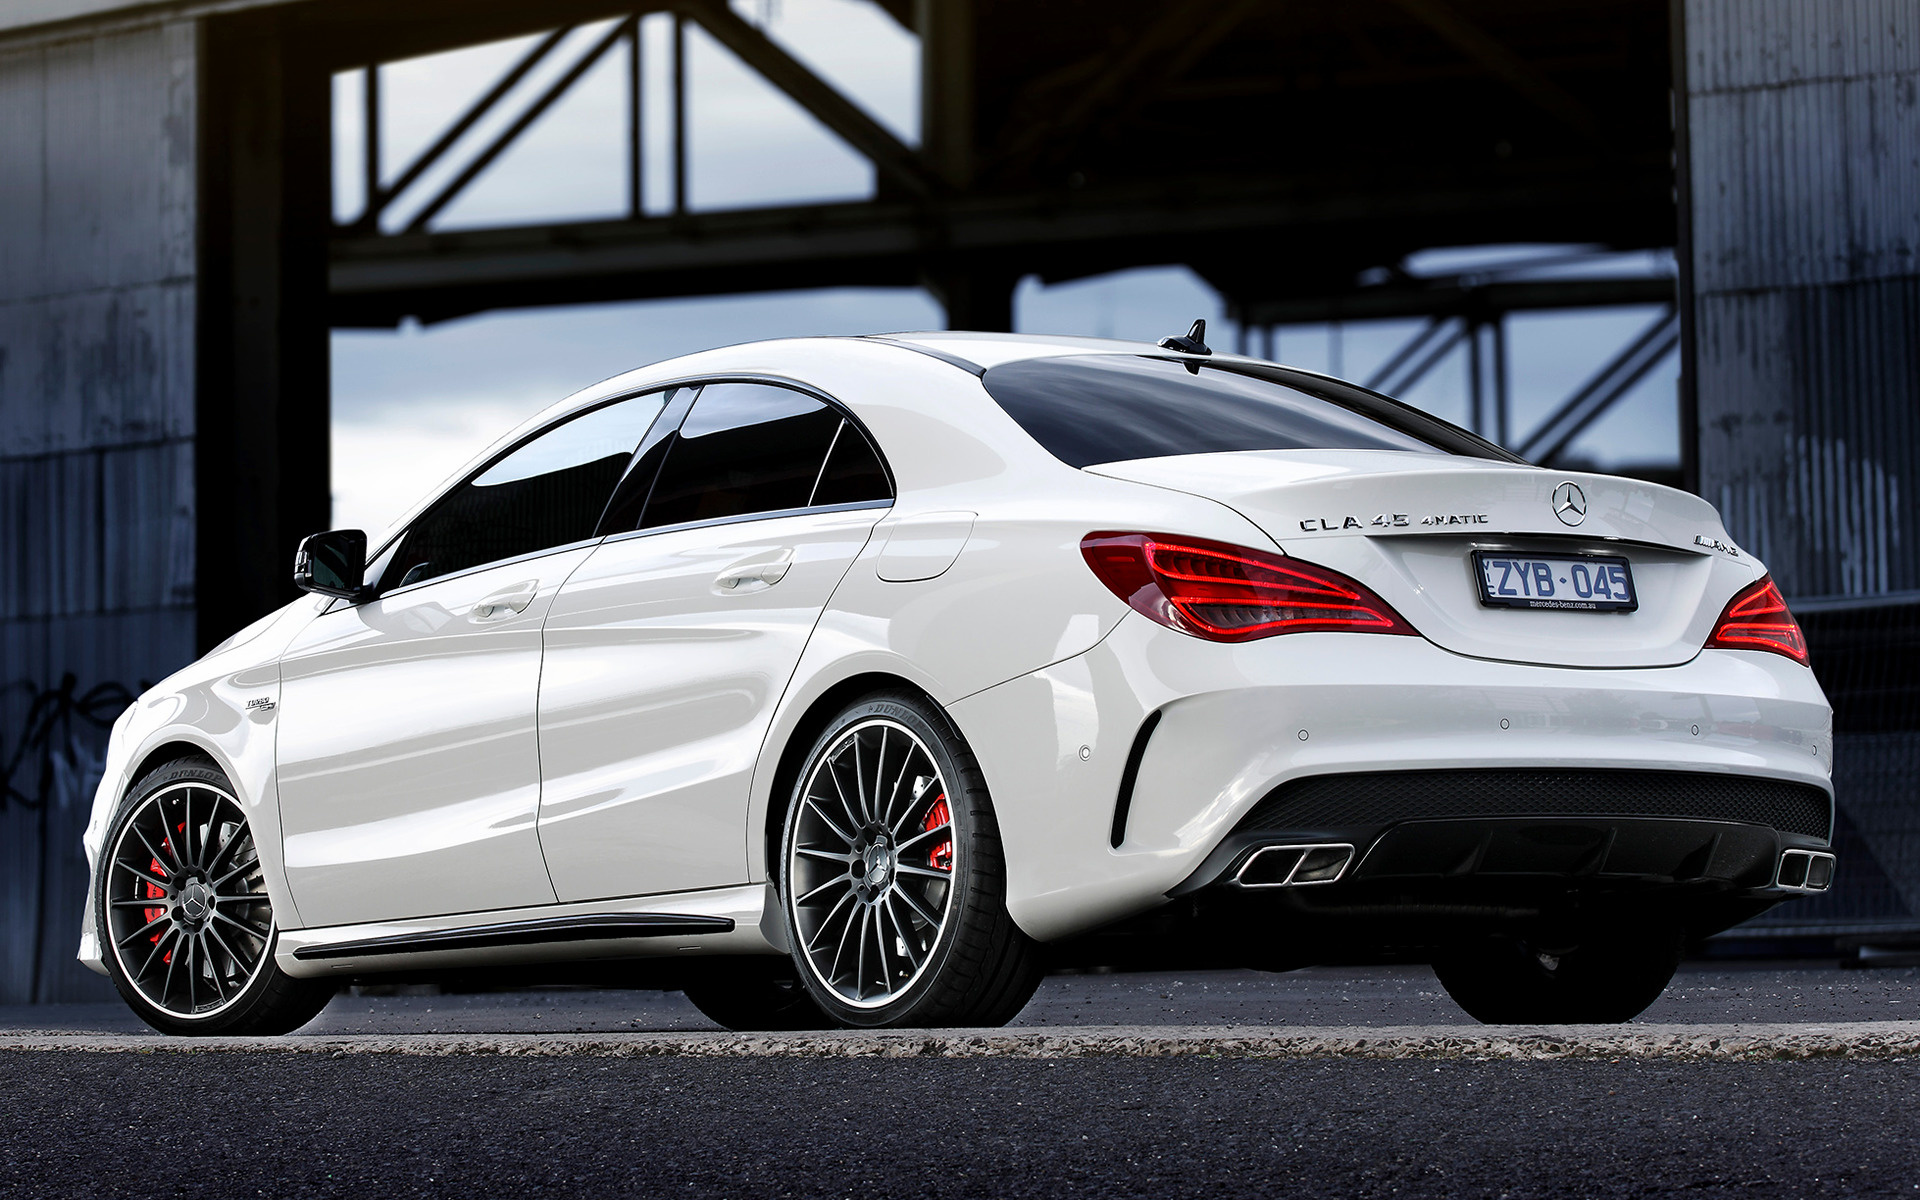 Cla 45 Amg >> 2013 Mercedes-Benz CLA 45 AMG (AU) - Wallpapers and HD ...